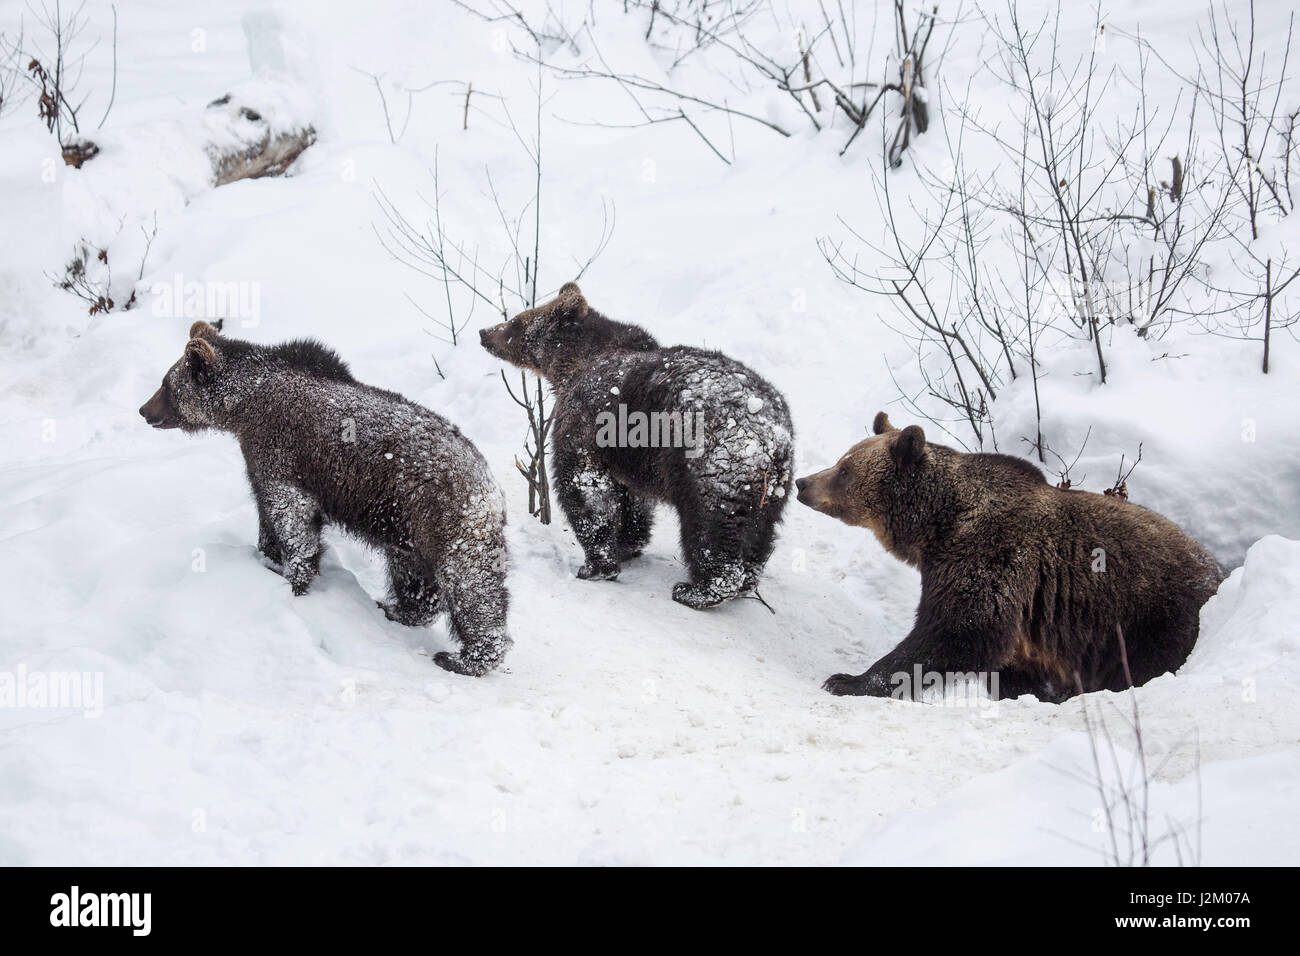 Female and two 1-year-old brown bear cubs (Ursus arctos arctos) leaving den in the snow in winter - Stock Image